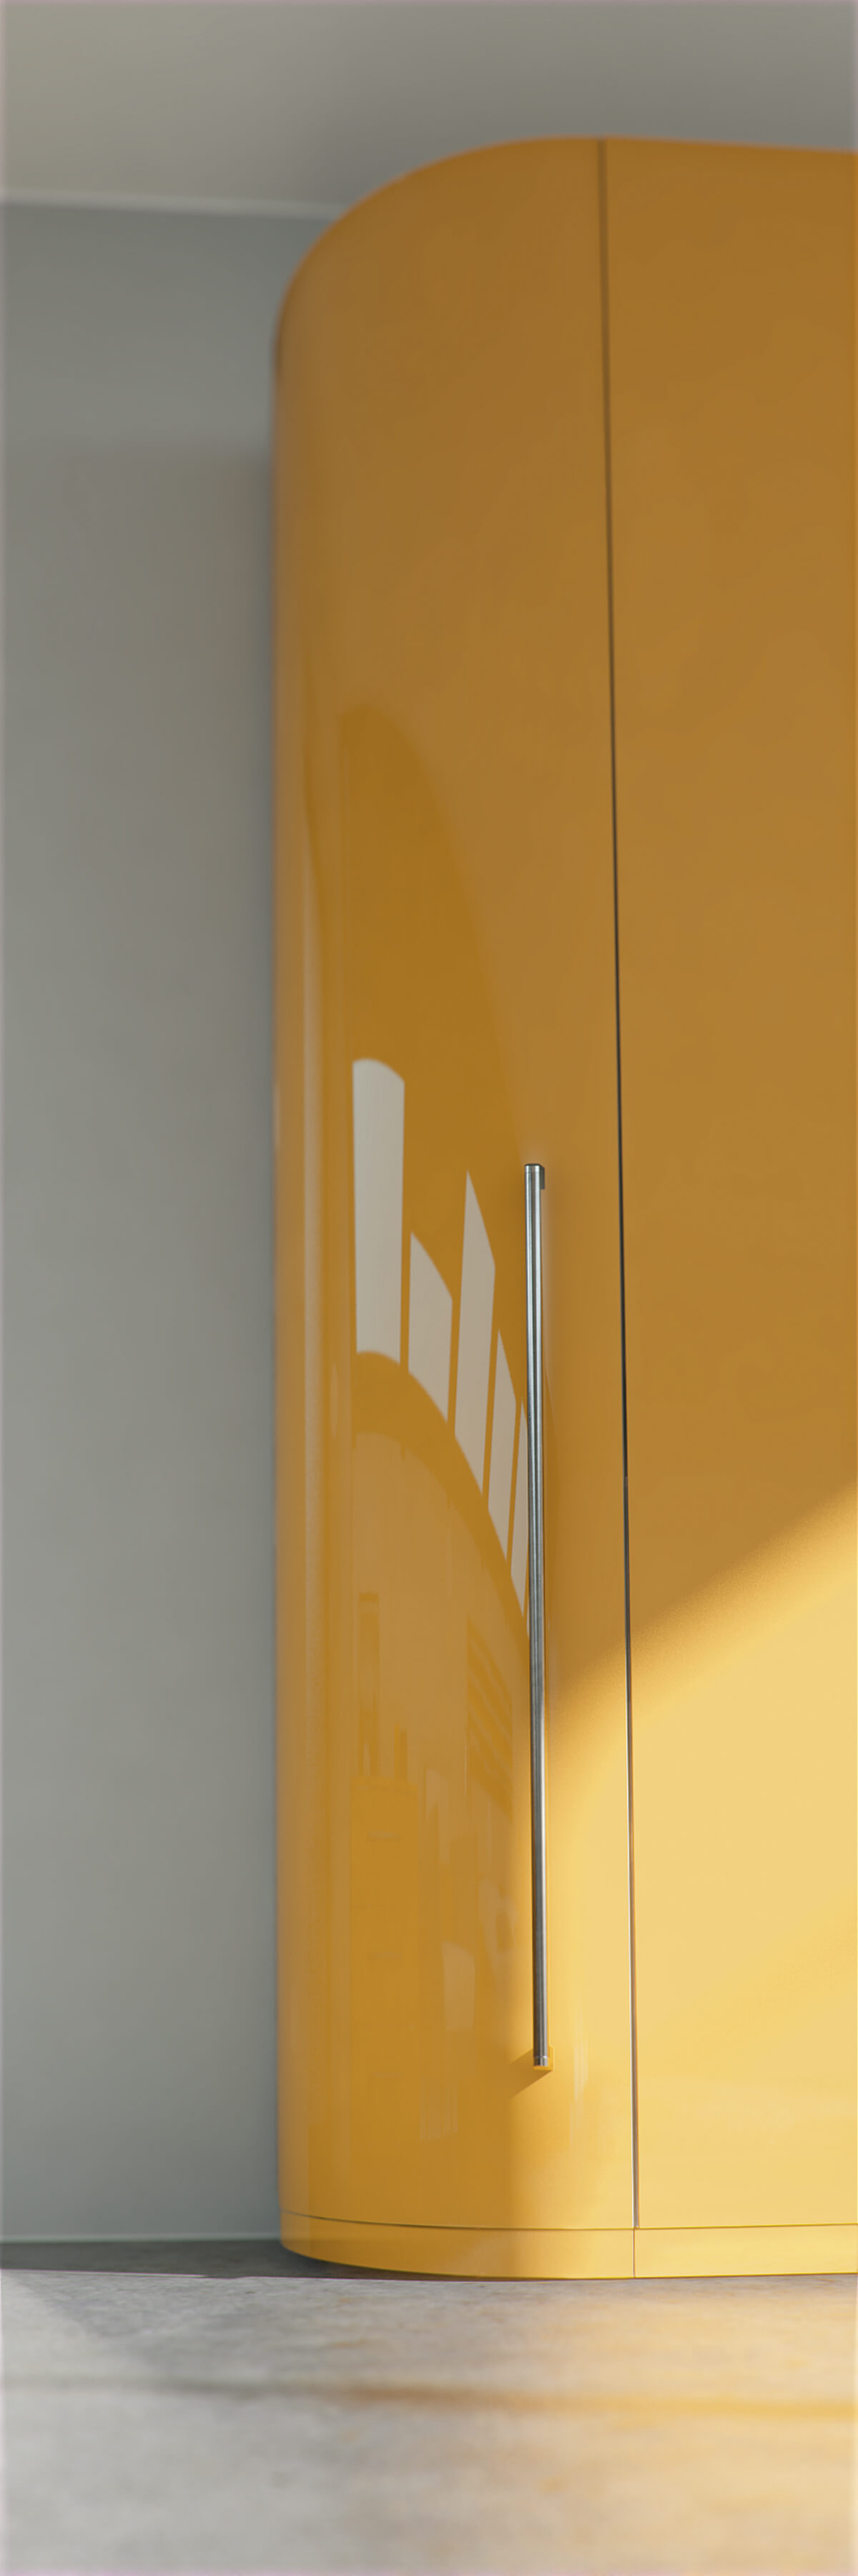 Curved-Doors-and-Plinth